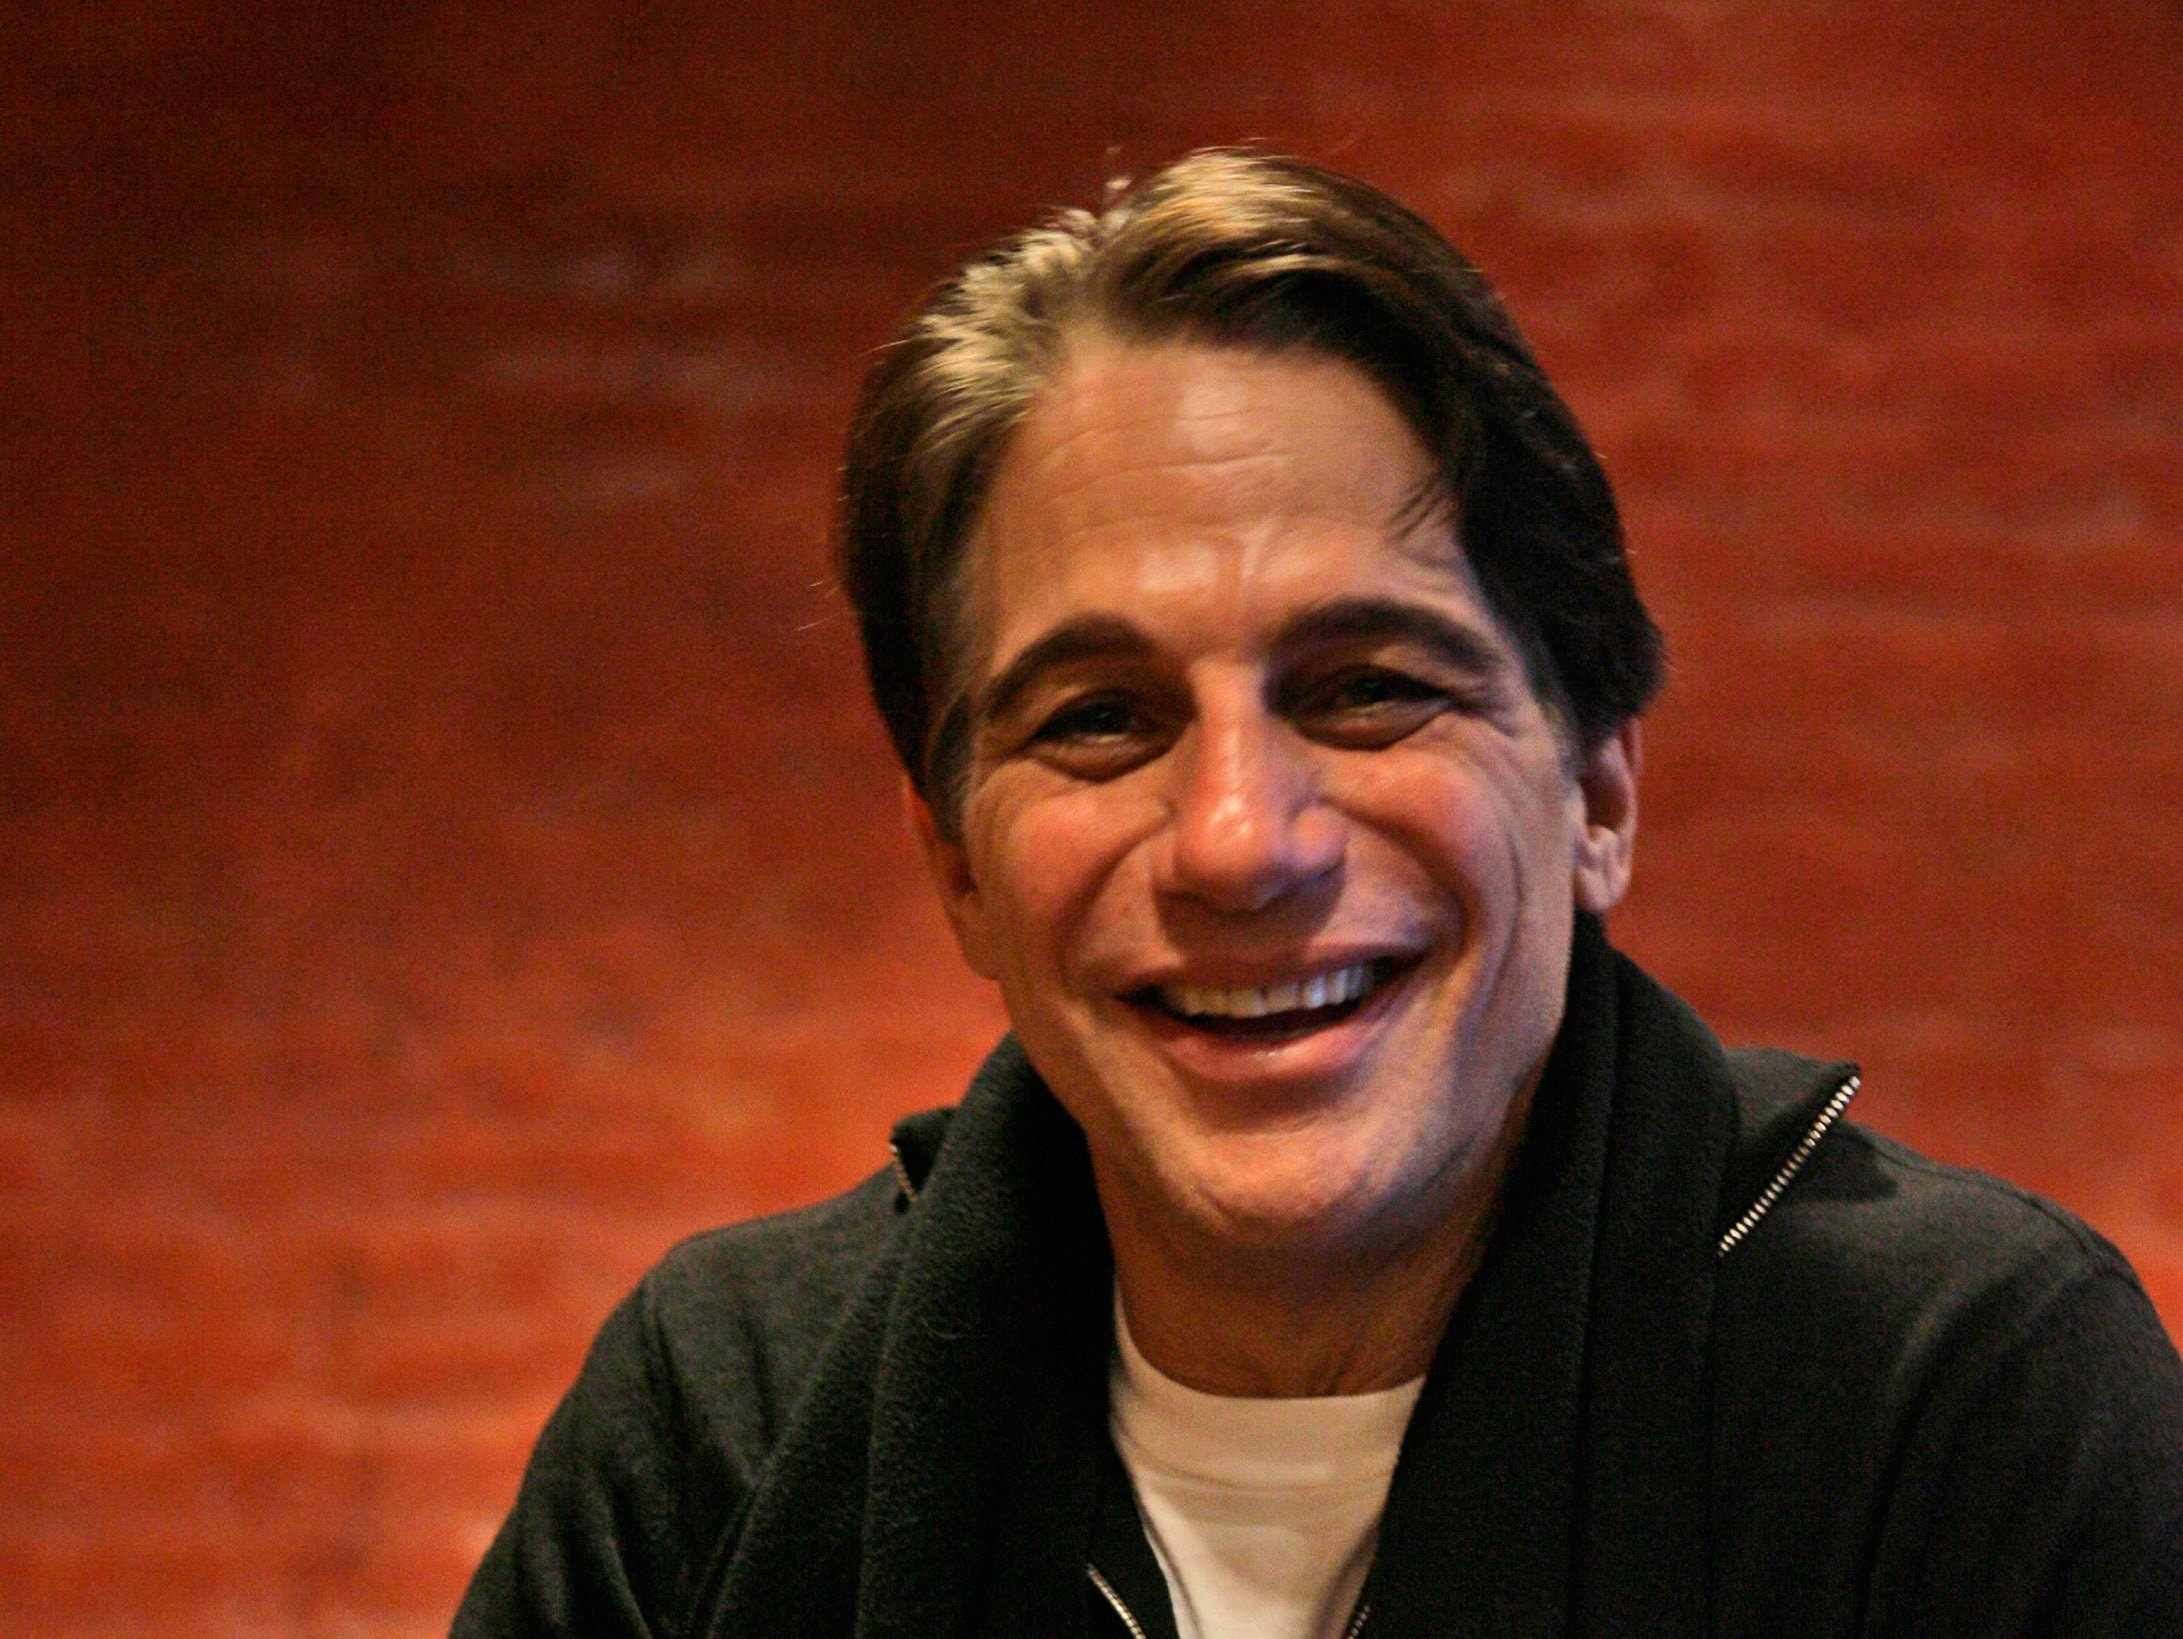 Tony Danza Pictures